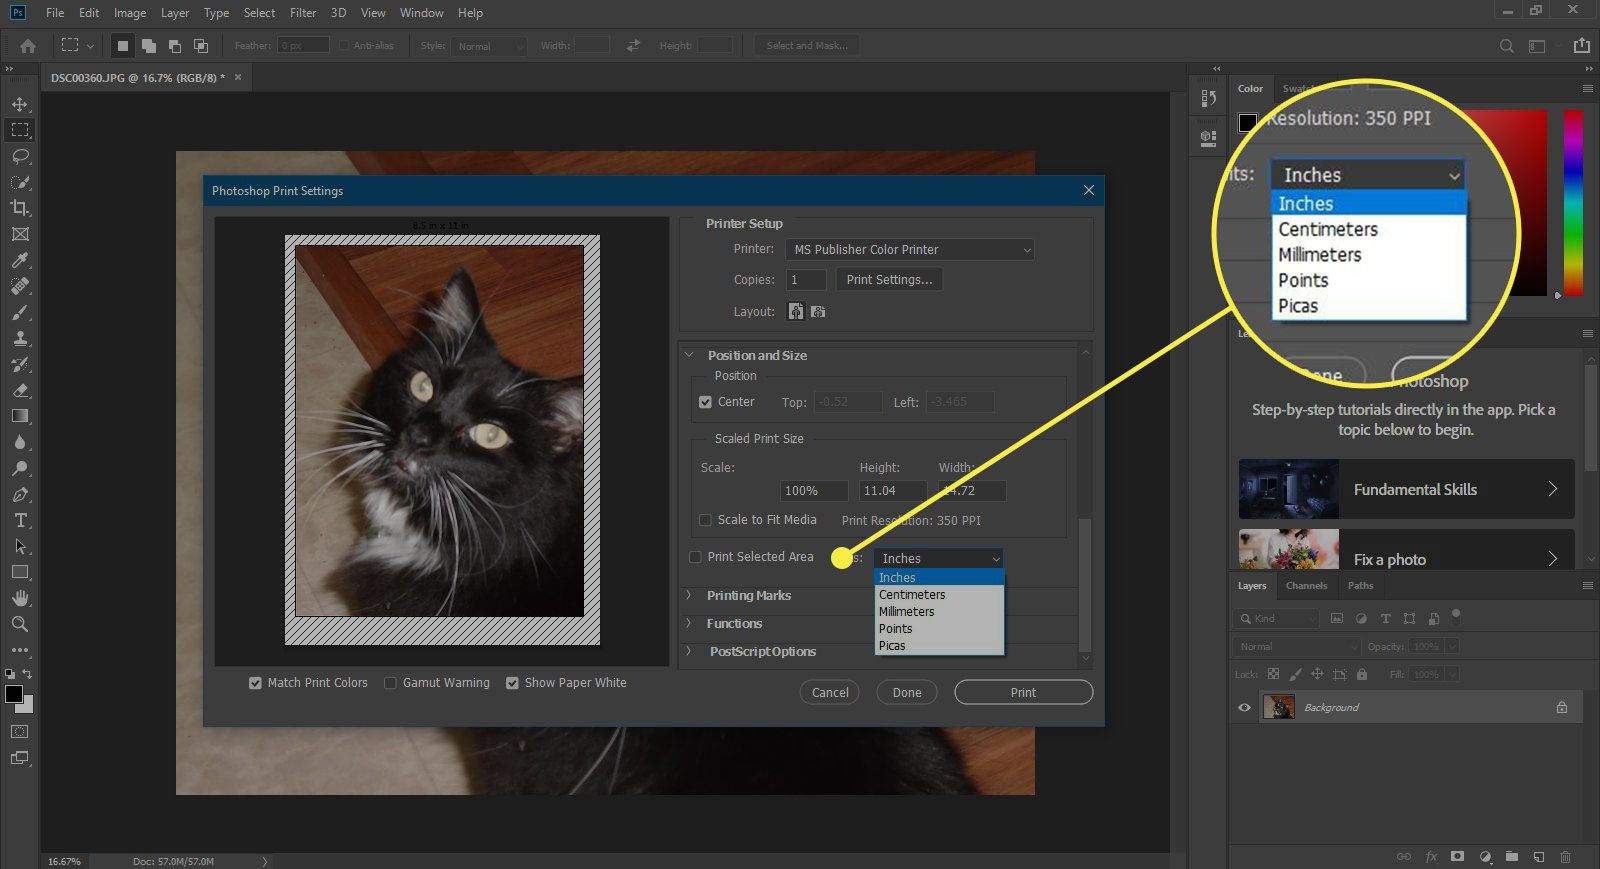 A screenshot of Photoshop's Print window with the Print Selected Area options highlighted